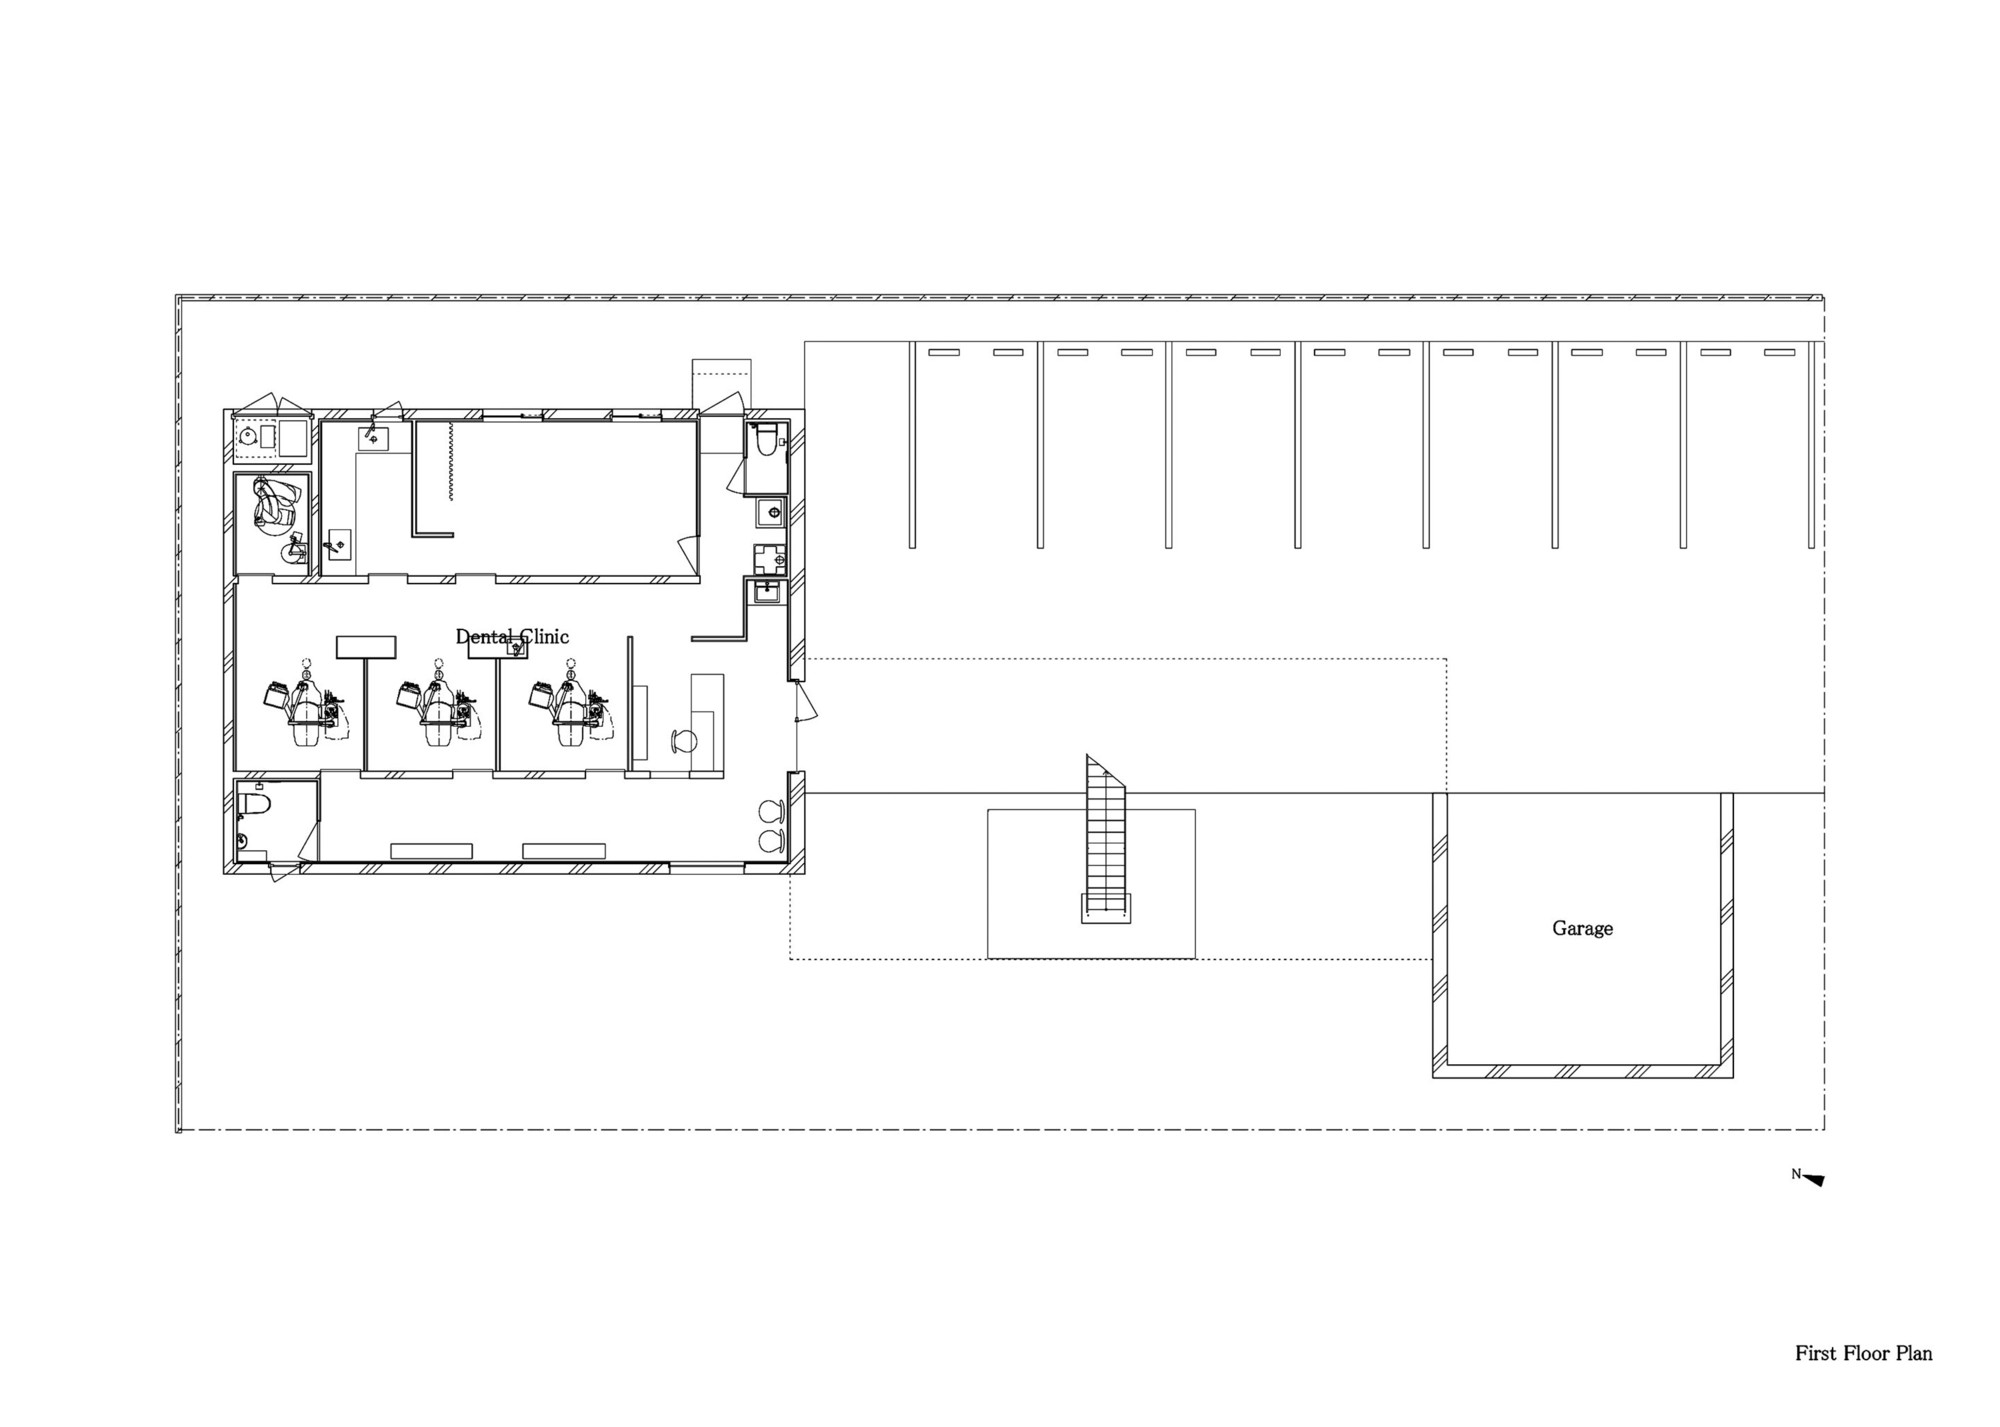 hight resolution of nagasawa dental clinic first floor plan